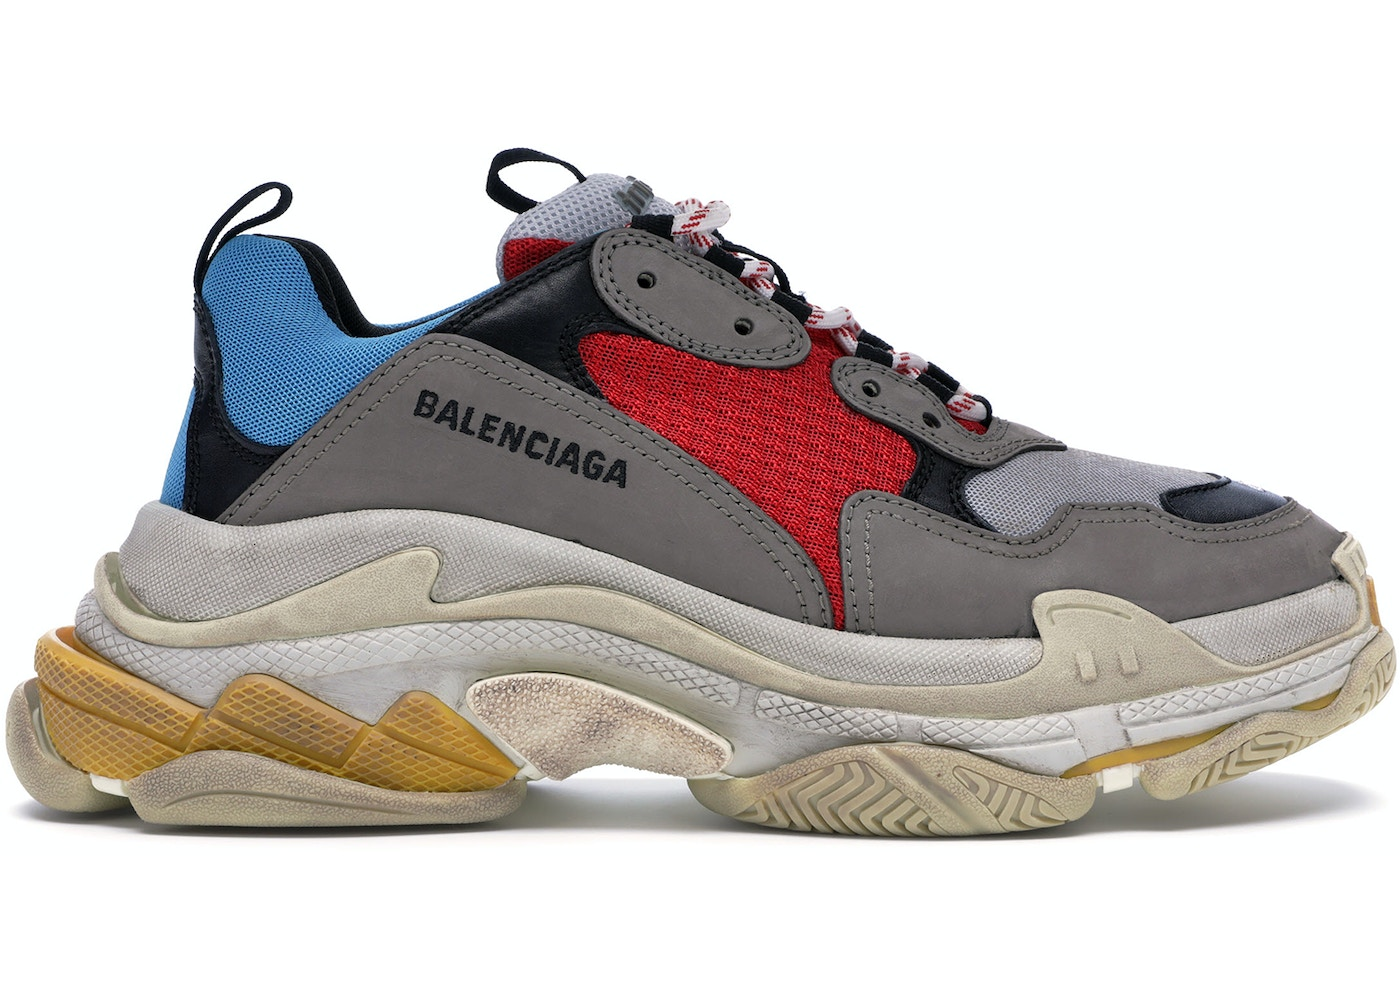 quality design ad86b cbbd2 Balenciaga Triple S Grey Red Blue (2018 Reissue)